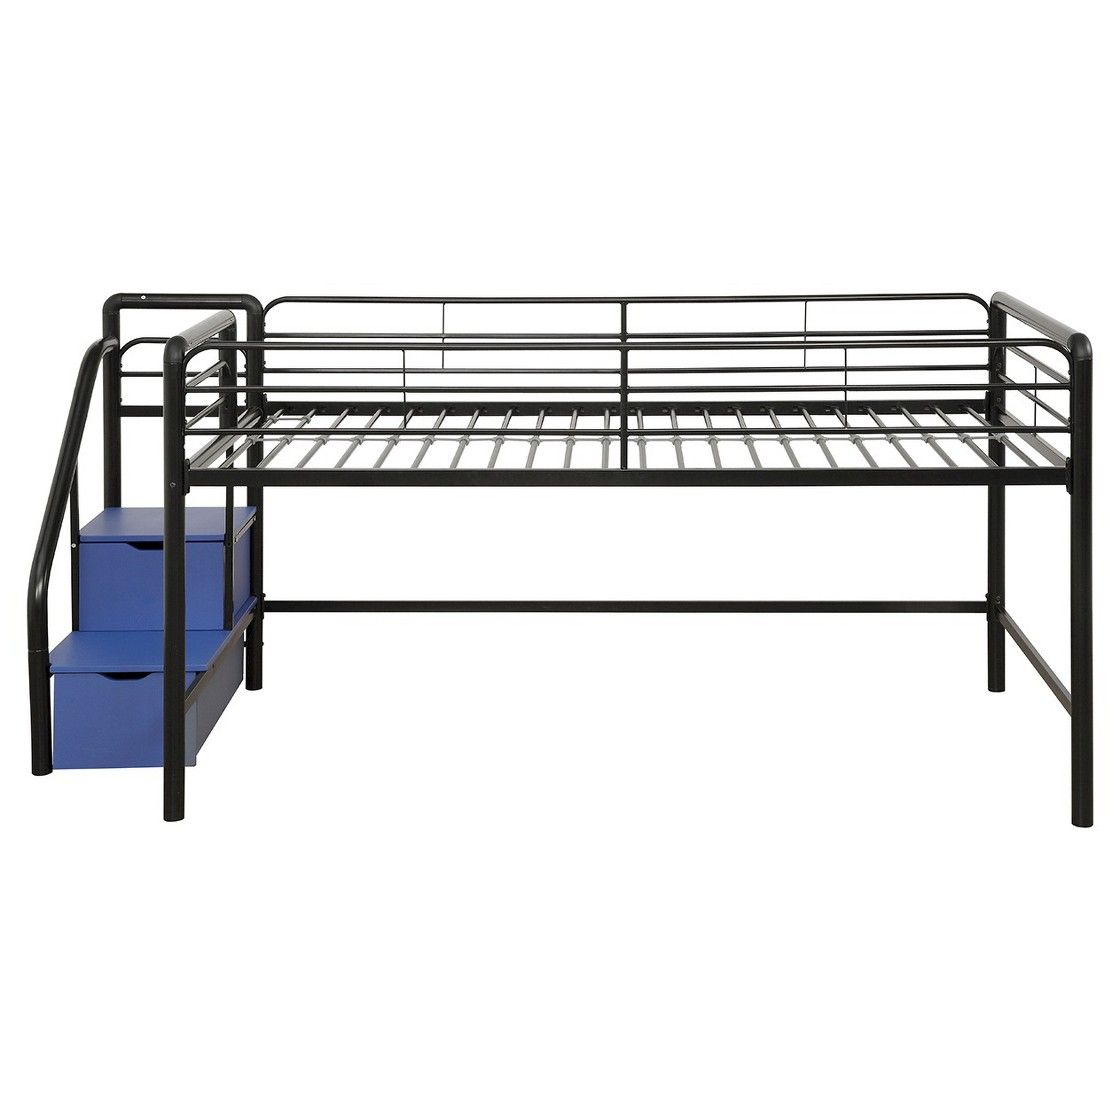 Twin loft bed with stairs and storage  Junior Loft Bed With Storage Steps  Twin  BlackSilver  Dorel